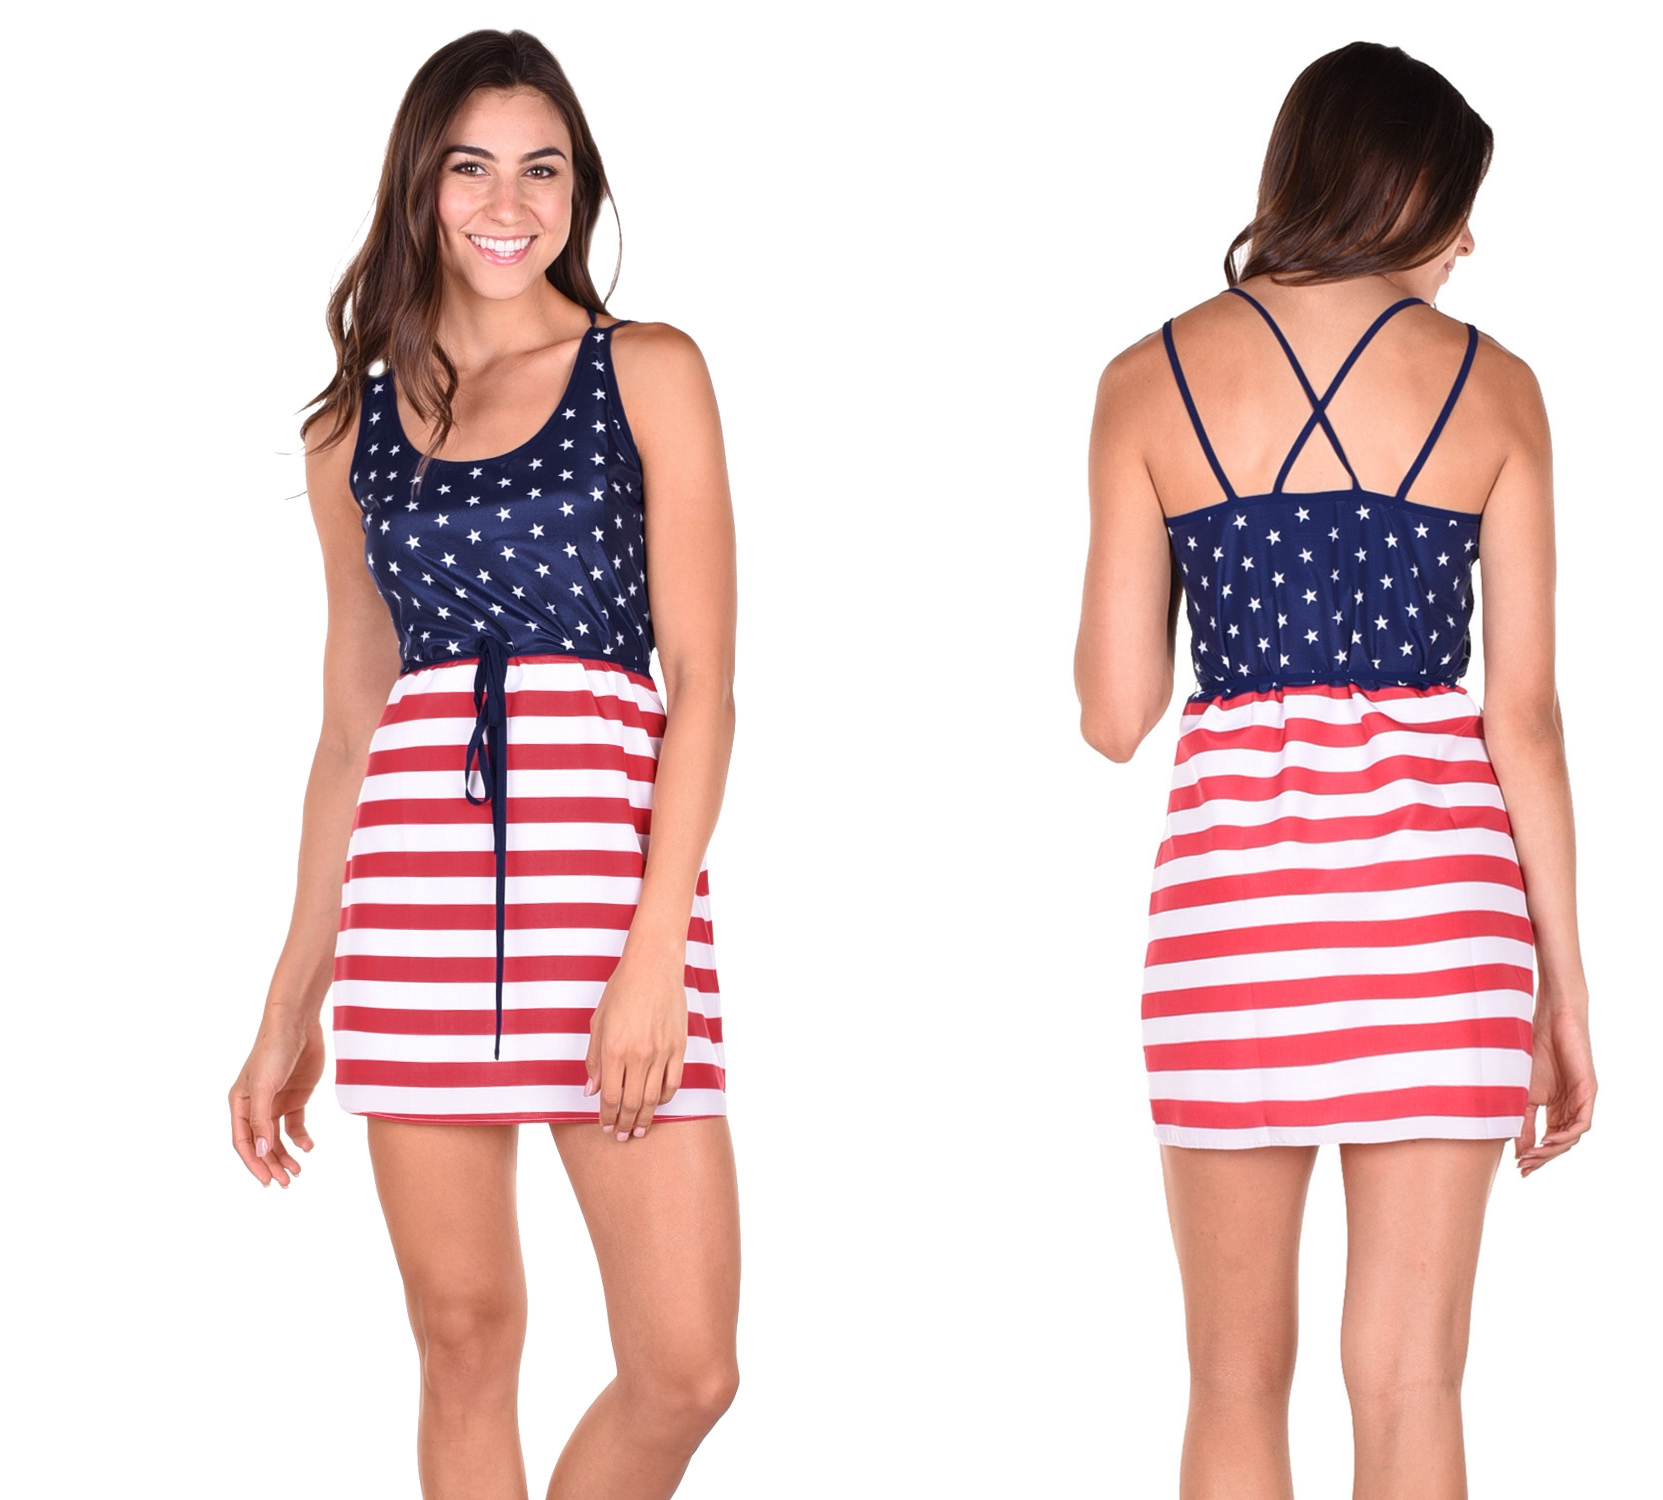 DRESS AMERICA 4th og july women dress